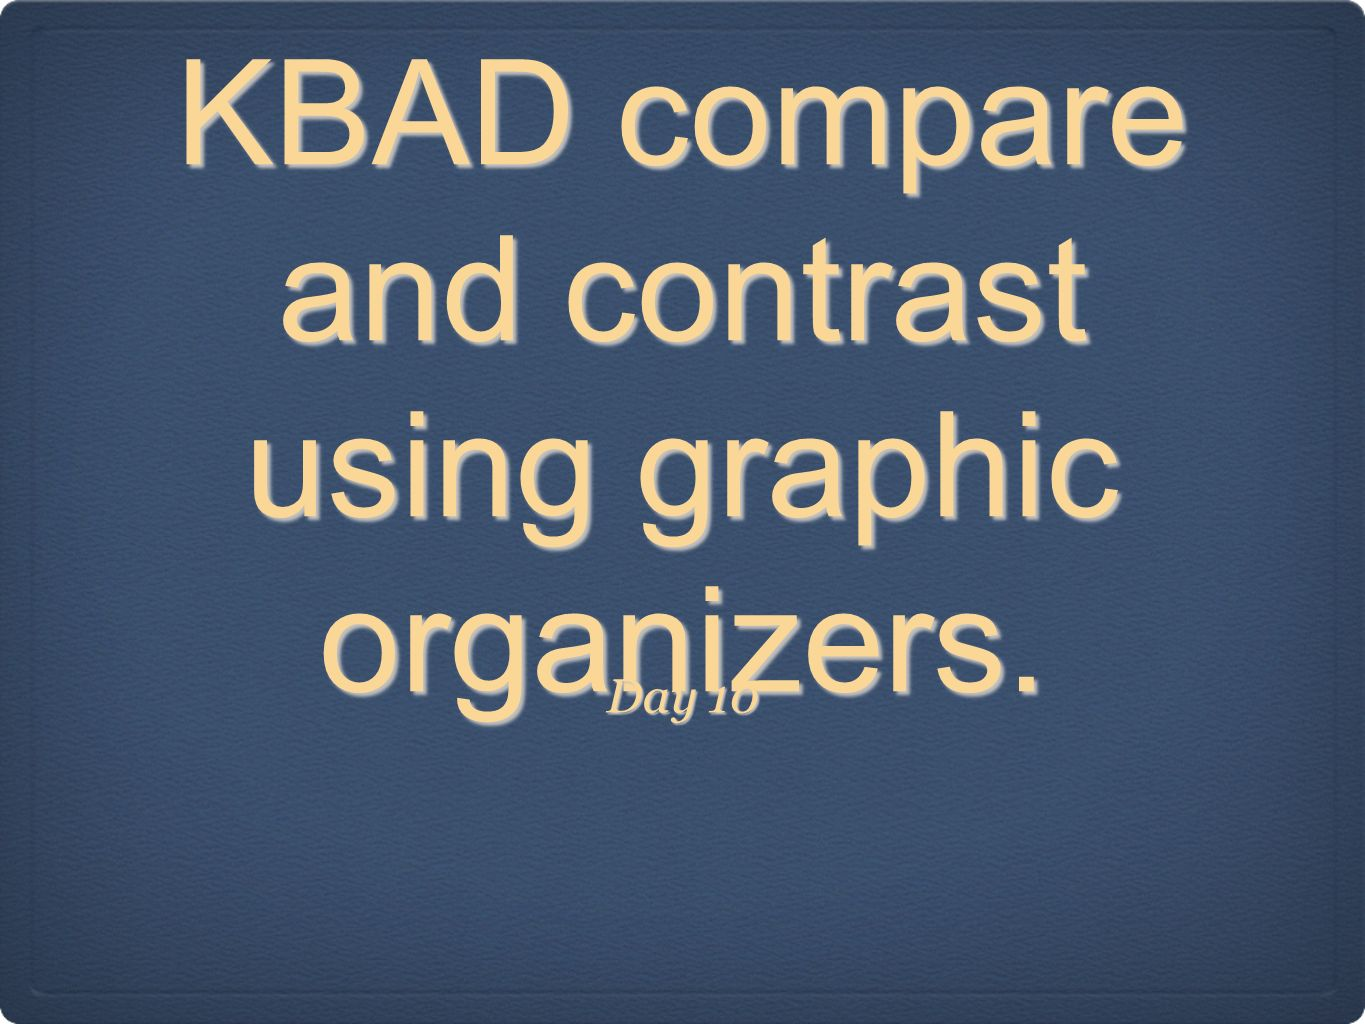 KBAD compare and contrast using graphic organizers.